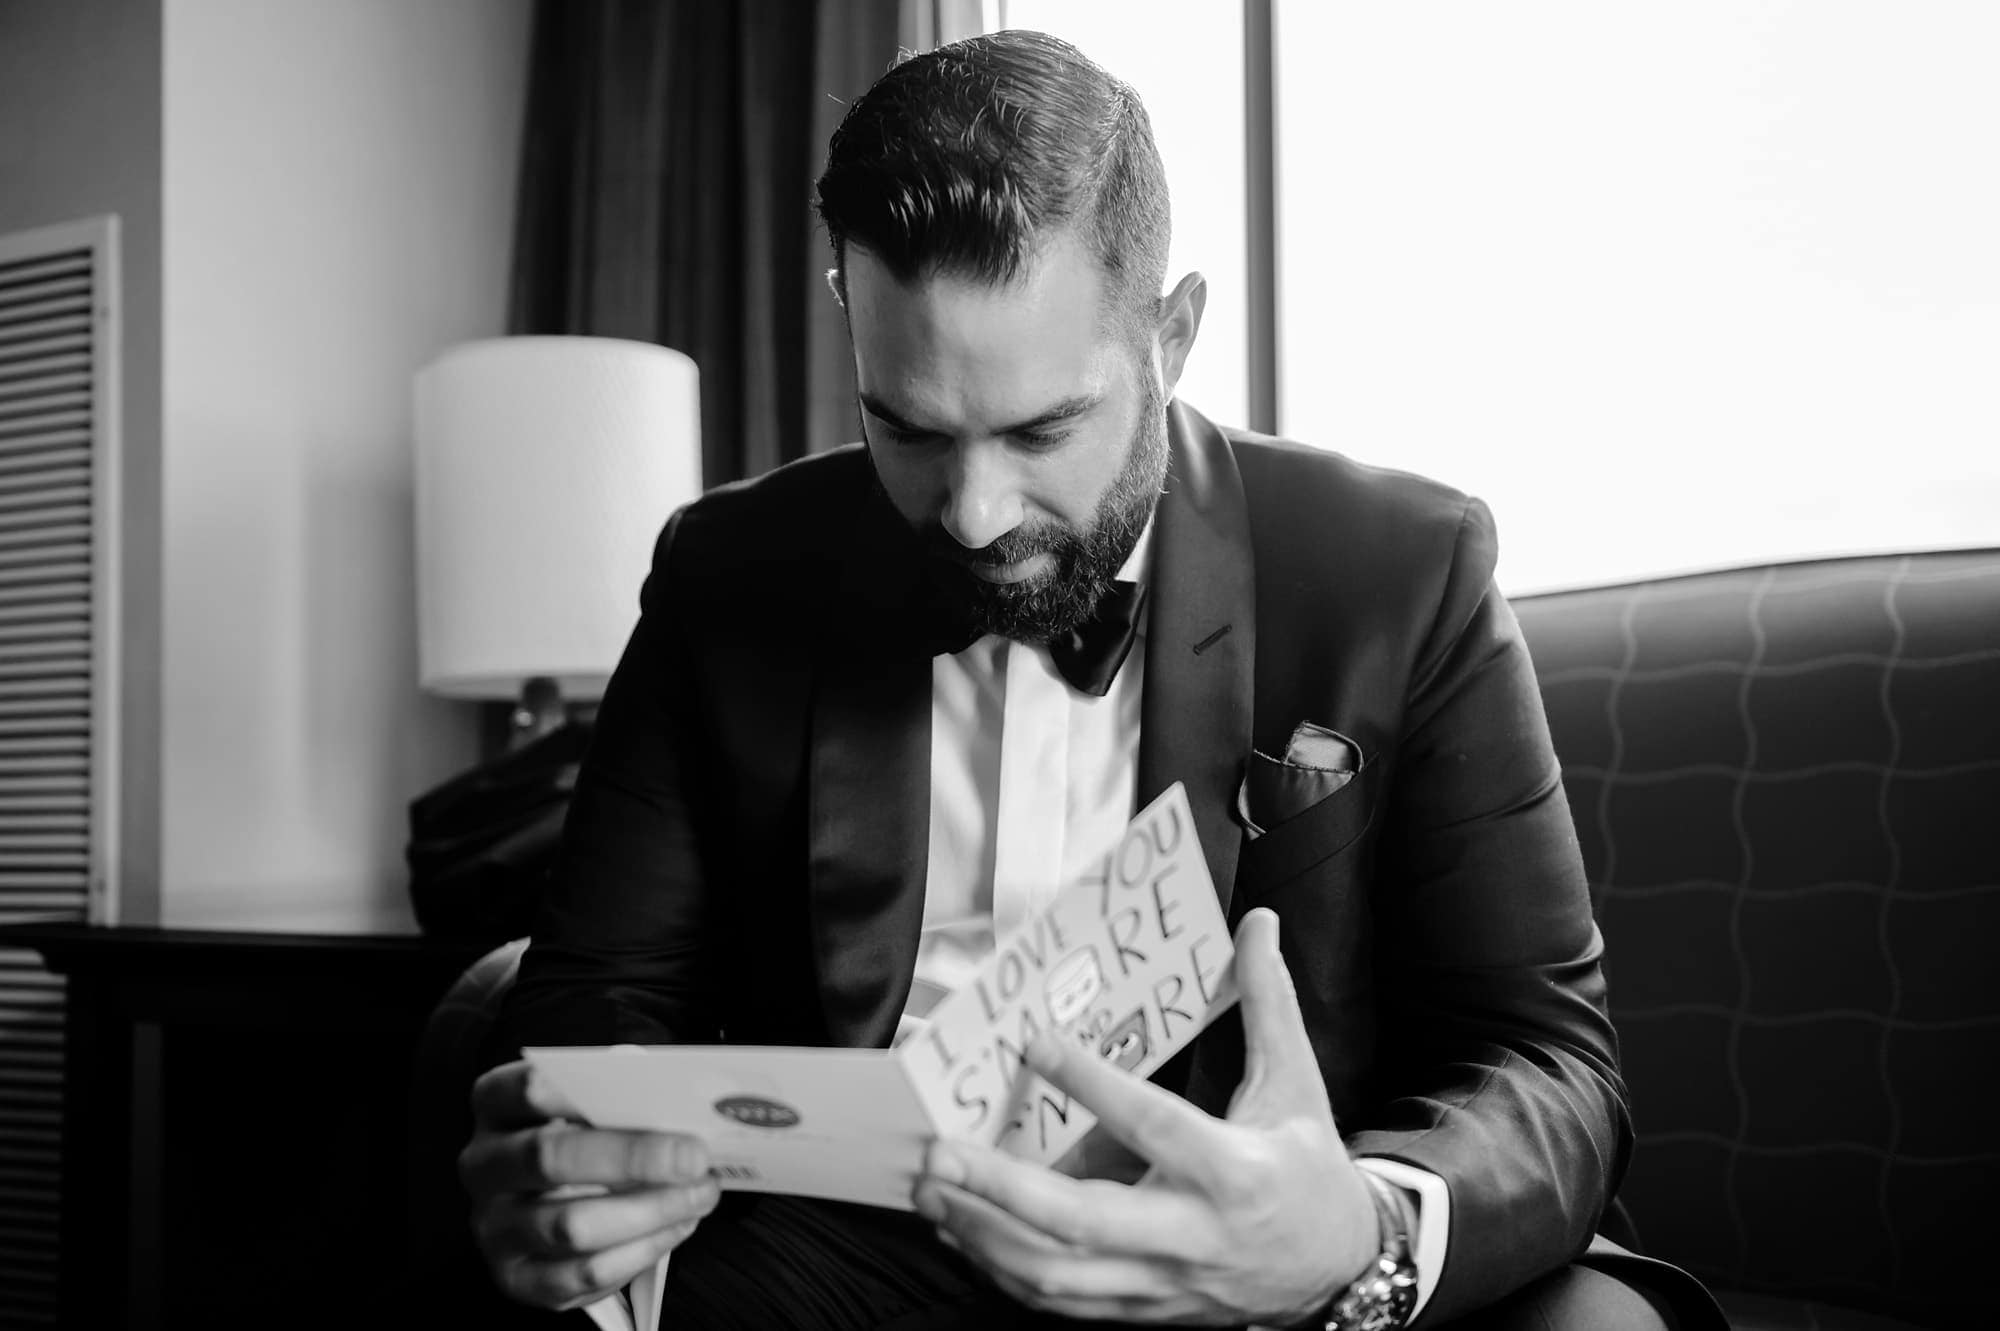 Joshua reads a personal note from his future bride in the hotel room